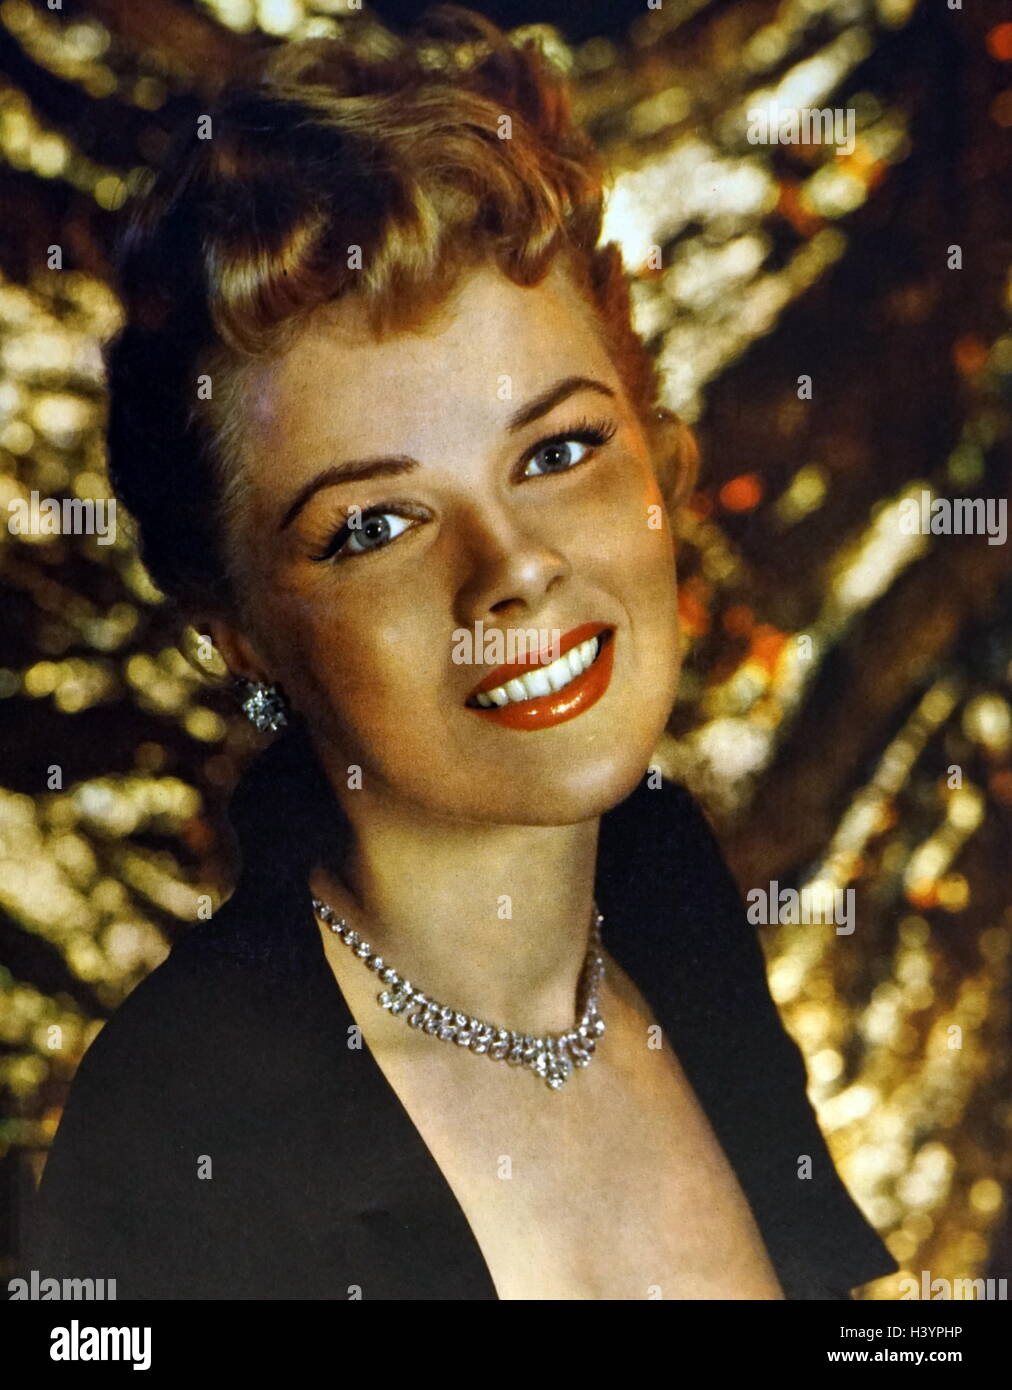 Photograph of Sally Forrest (1928-2015) an American film, stage and TV actress. Dated 20th Century - Stock Image